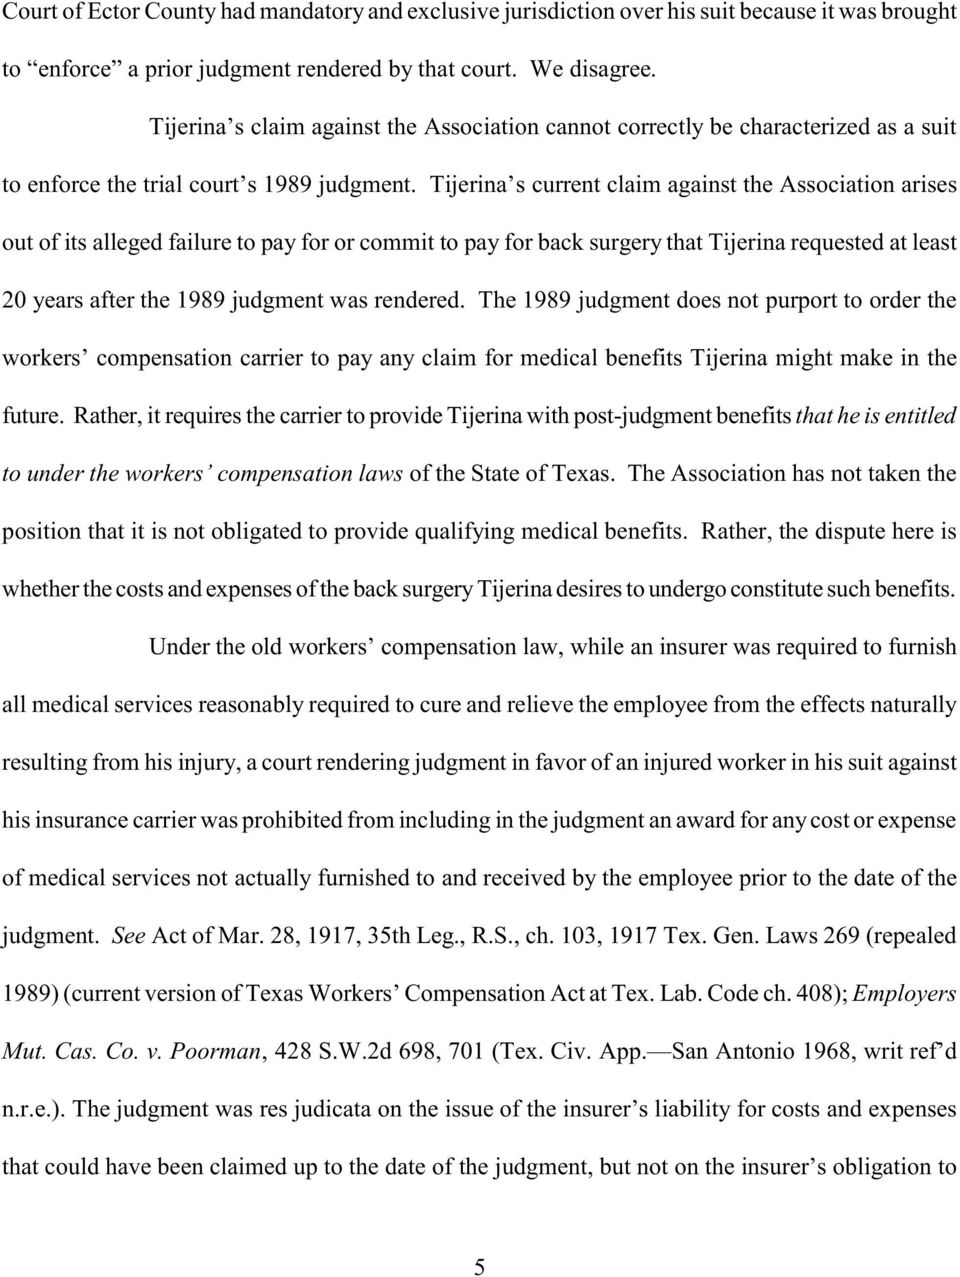 Tijerina s current claim against the Association arises out of its alleged failure to pay for or commit to pay for back surgery that Tijerina requested at least 20 years after the 1989 judgment was